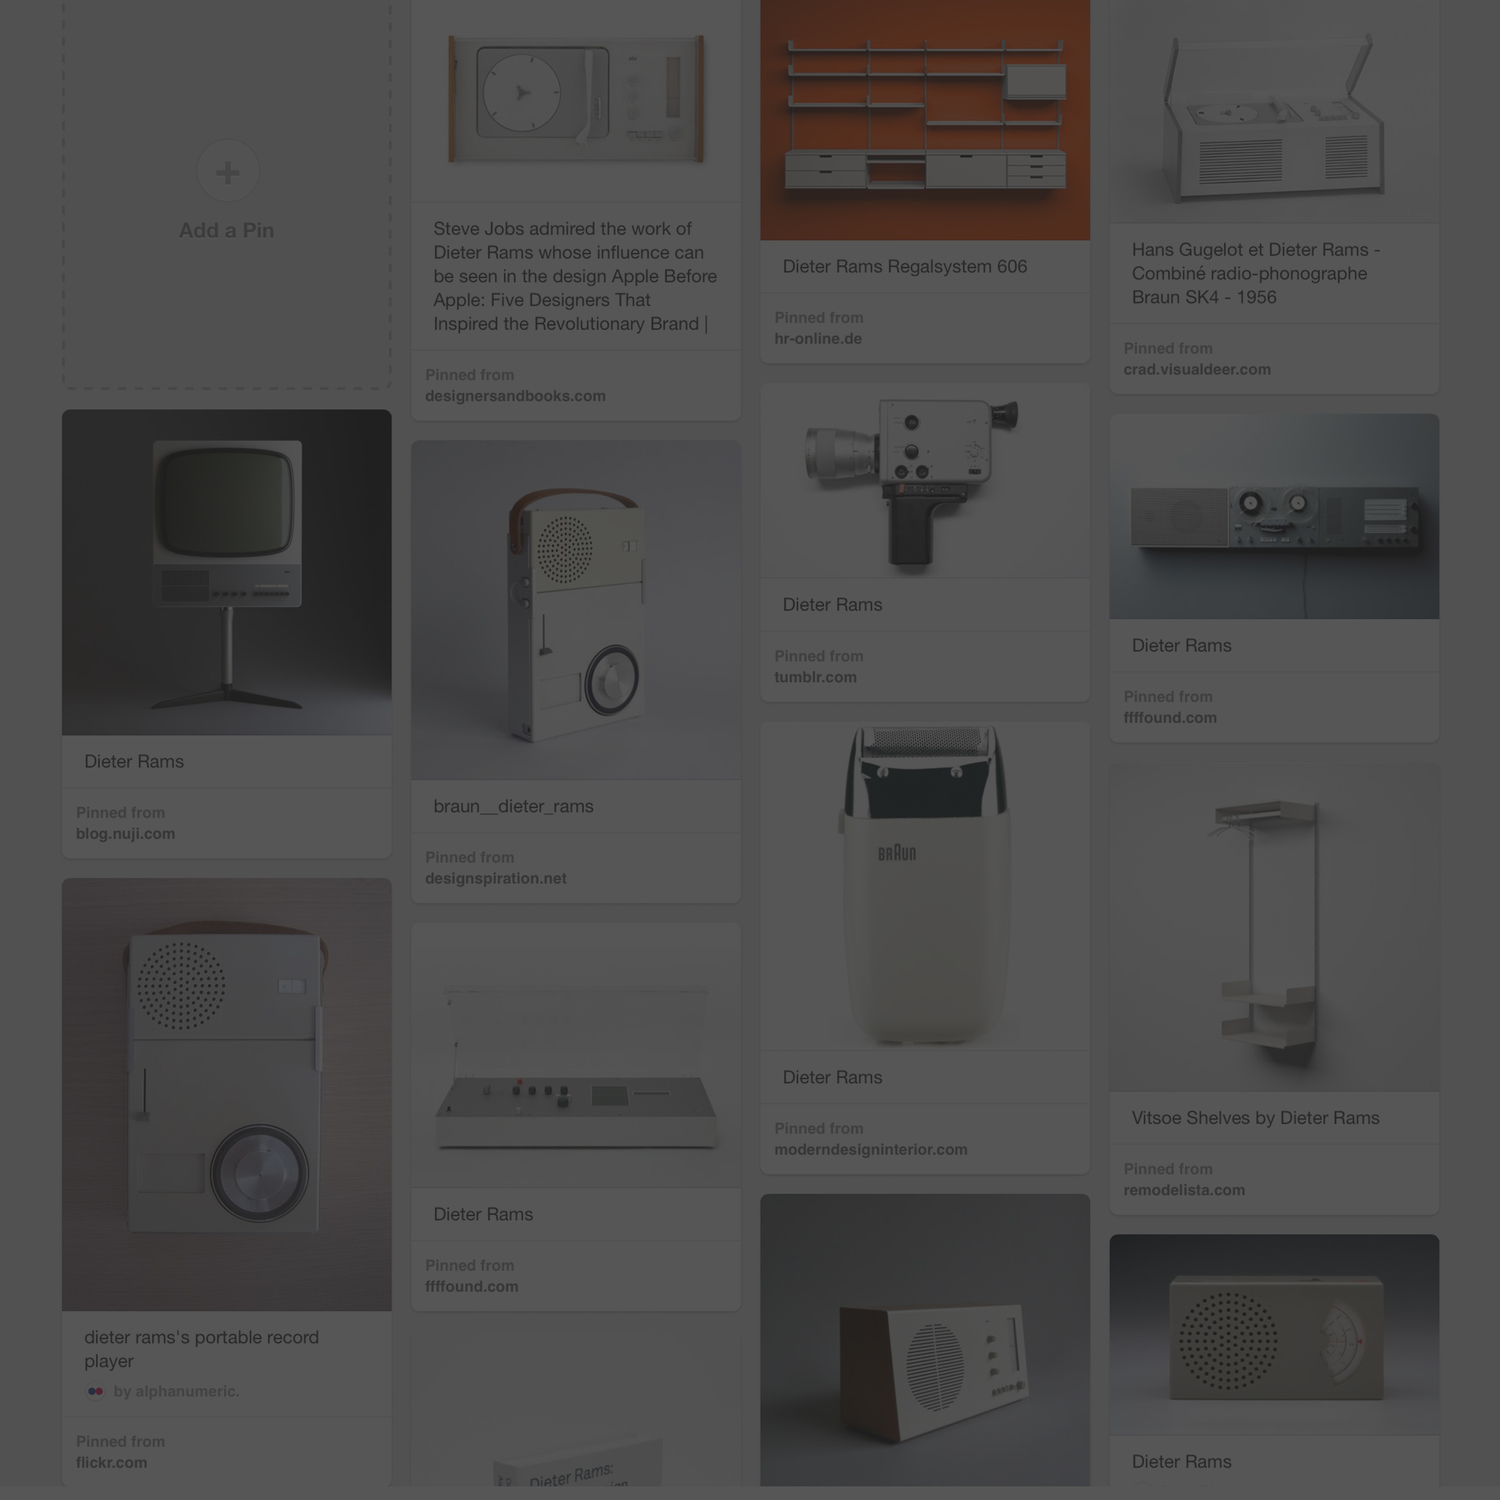 New Pinterest Integration: Rich Pins, Analytics, and More — The ...